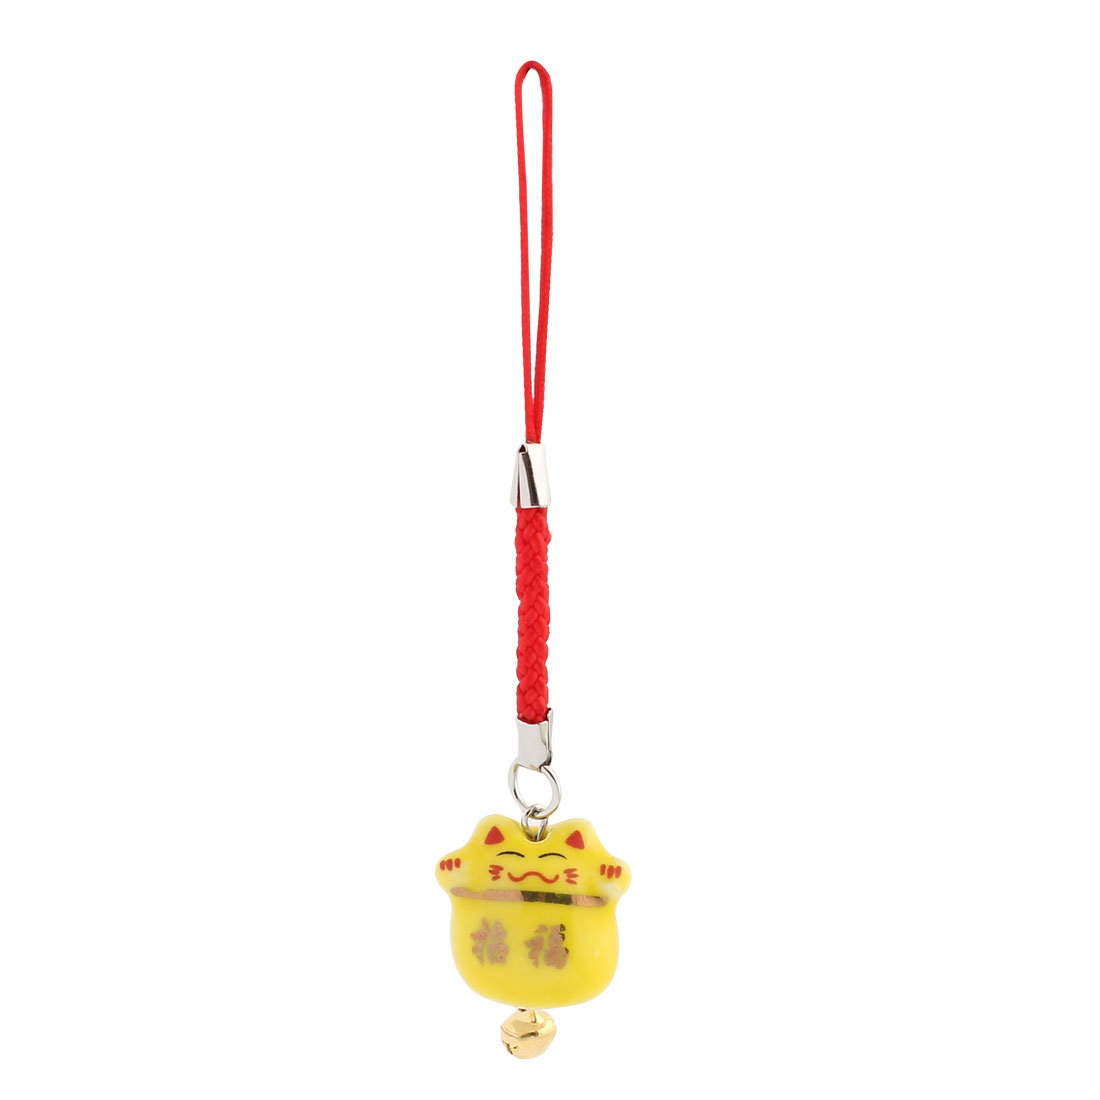 Ceramic Maneki Neko Tinkle Bell Pendant Mobile Phone Strap Decor 95mm Length Yellow